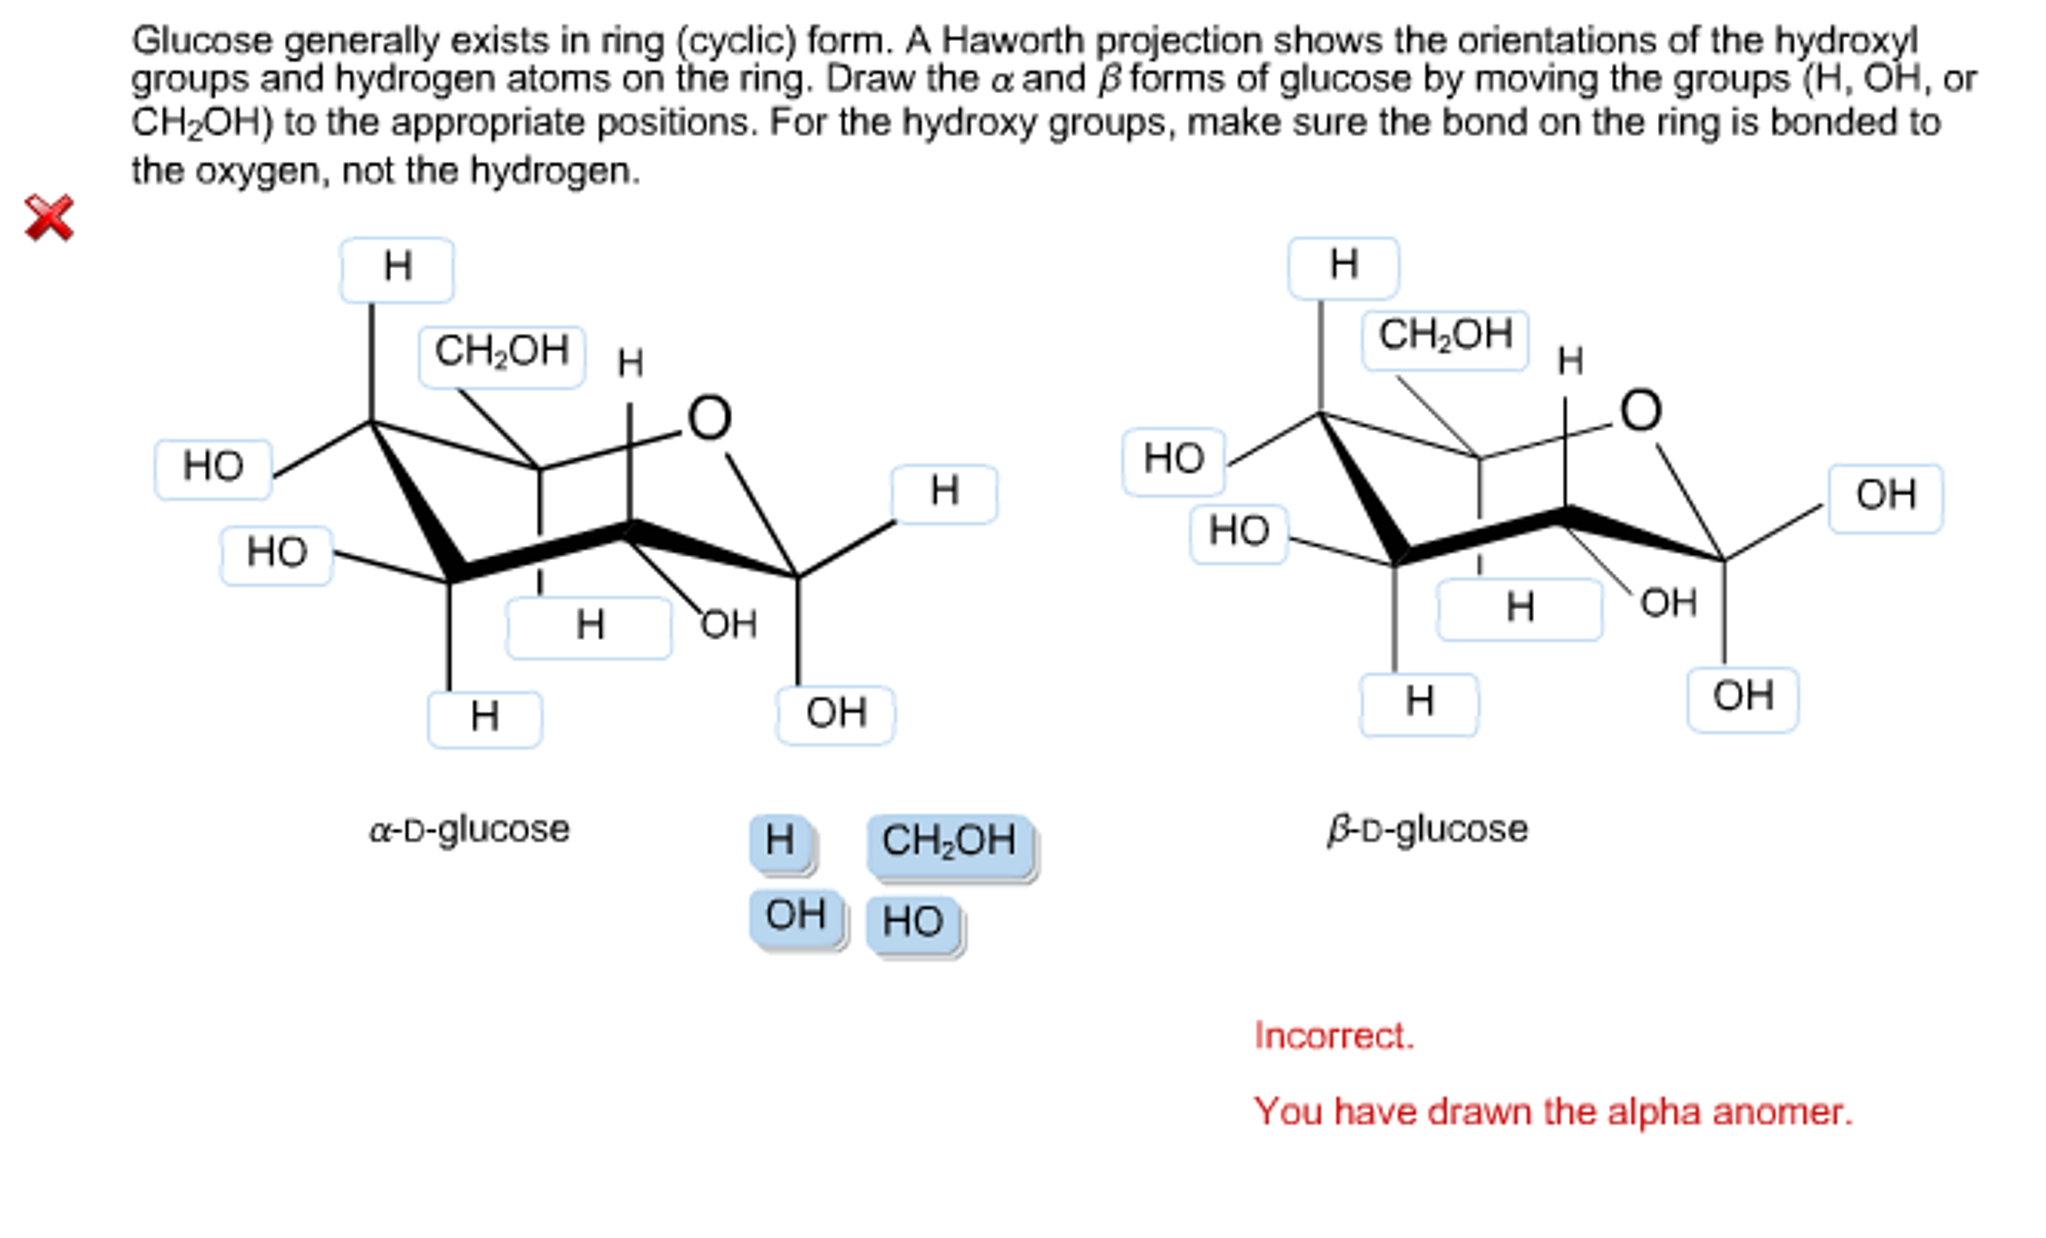 glucose generally exists in ring (cyclic) form  a